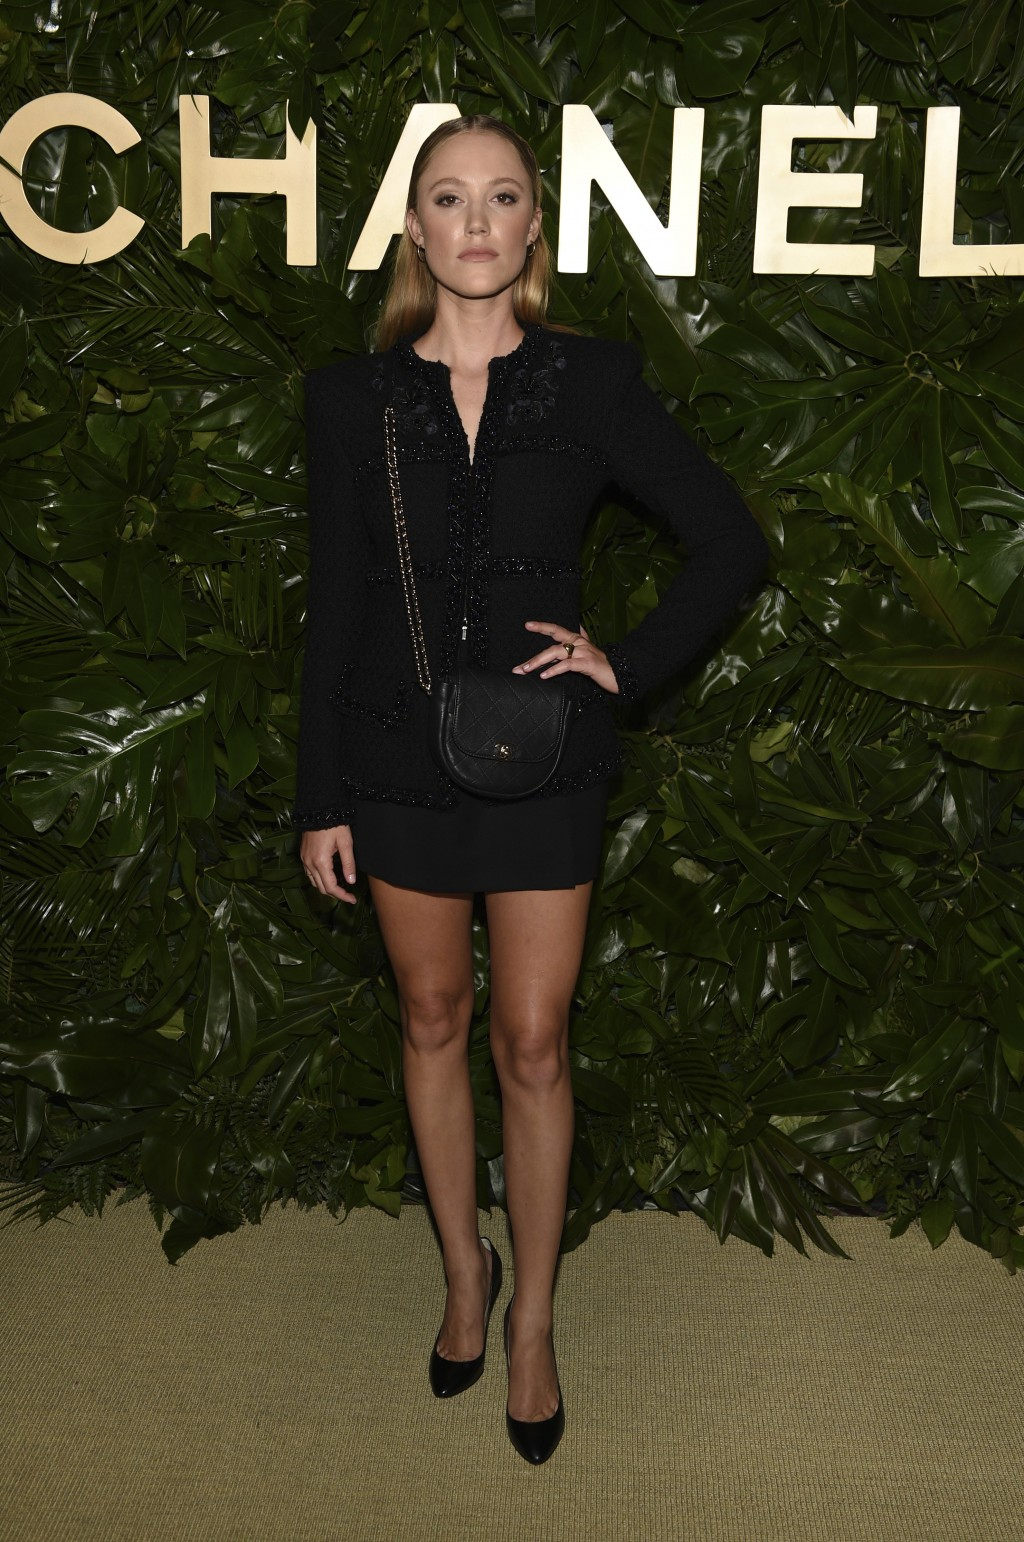 Actress Maika Monroe poses at the launch of the Gabrielle Chanel Essence fragrance at the Chateau Marmont, Thursday, Sept. 12, 2019, in Los Angeles. (